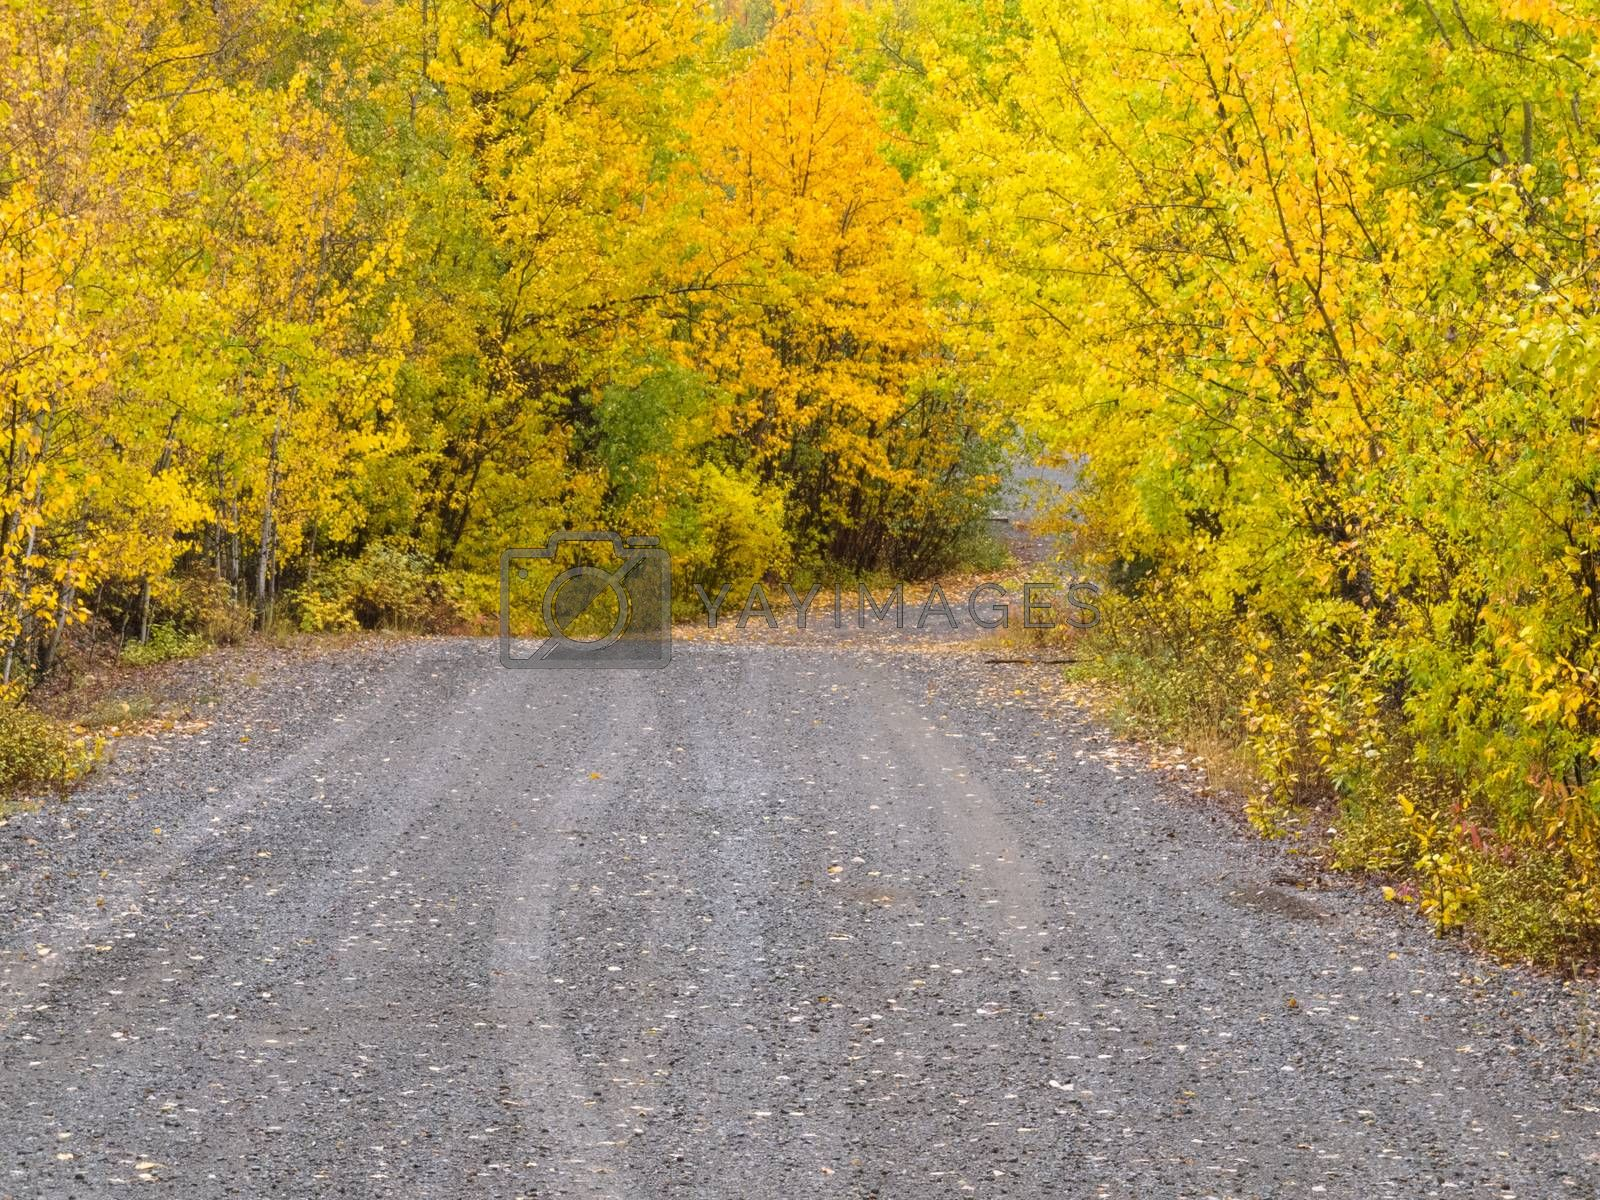 Small dirt road golden taiga fogs Yukon Canada by PiLens